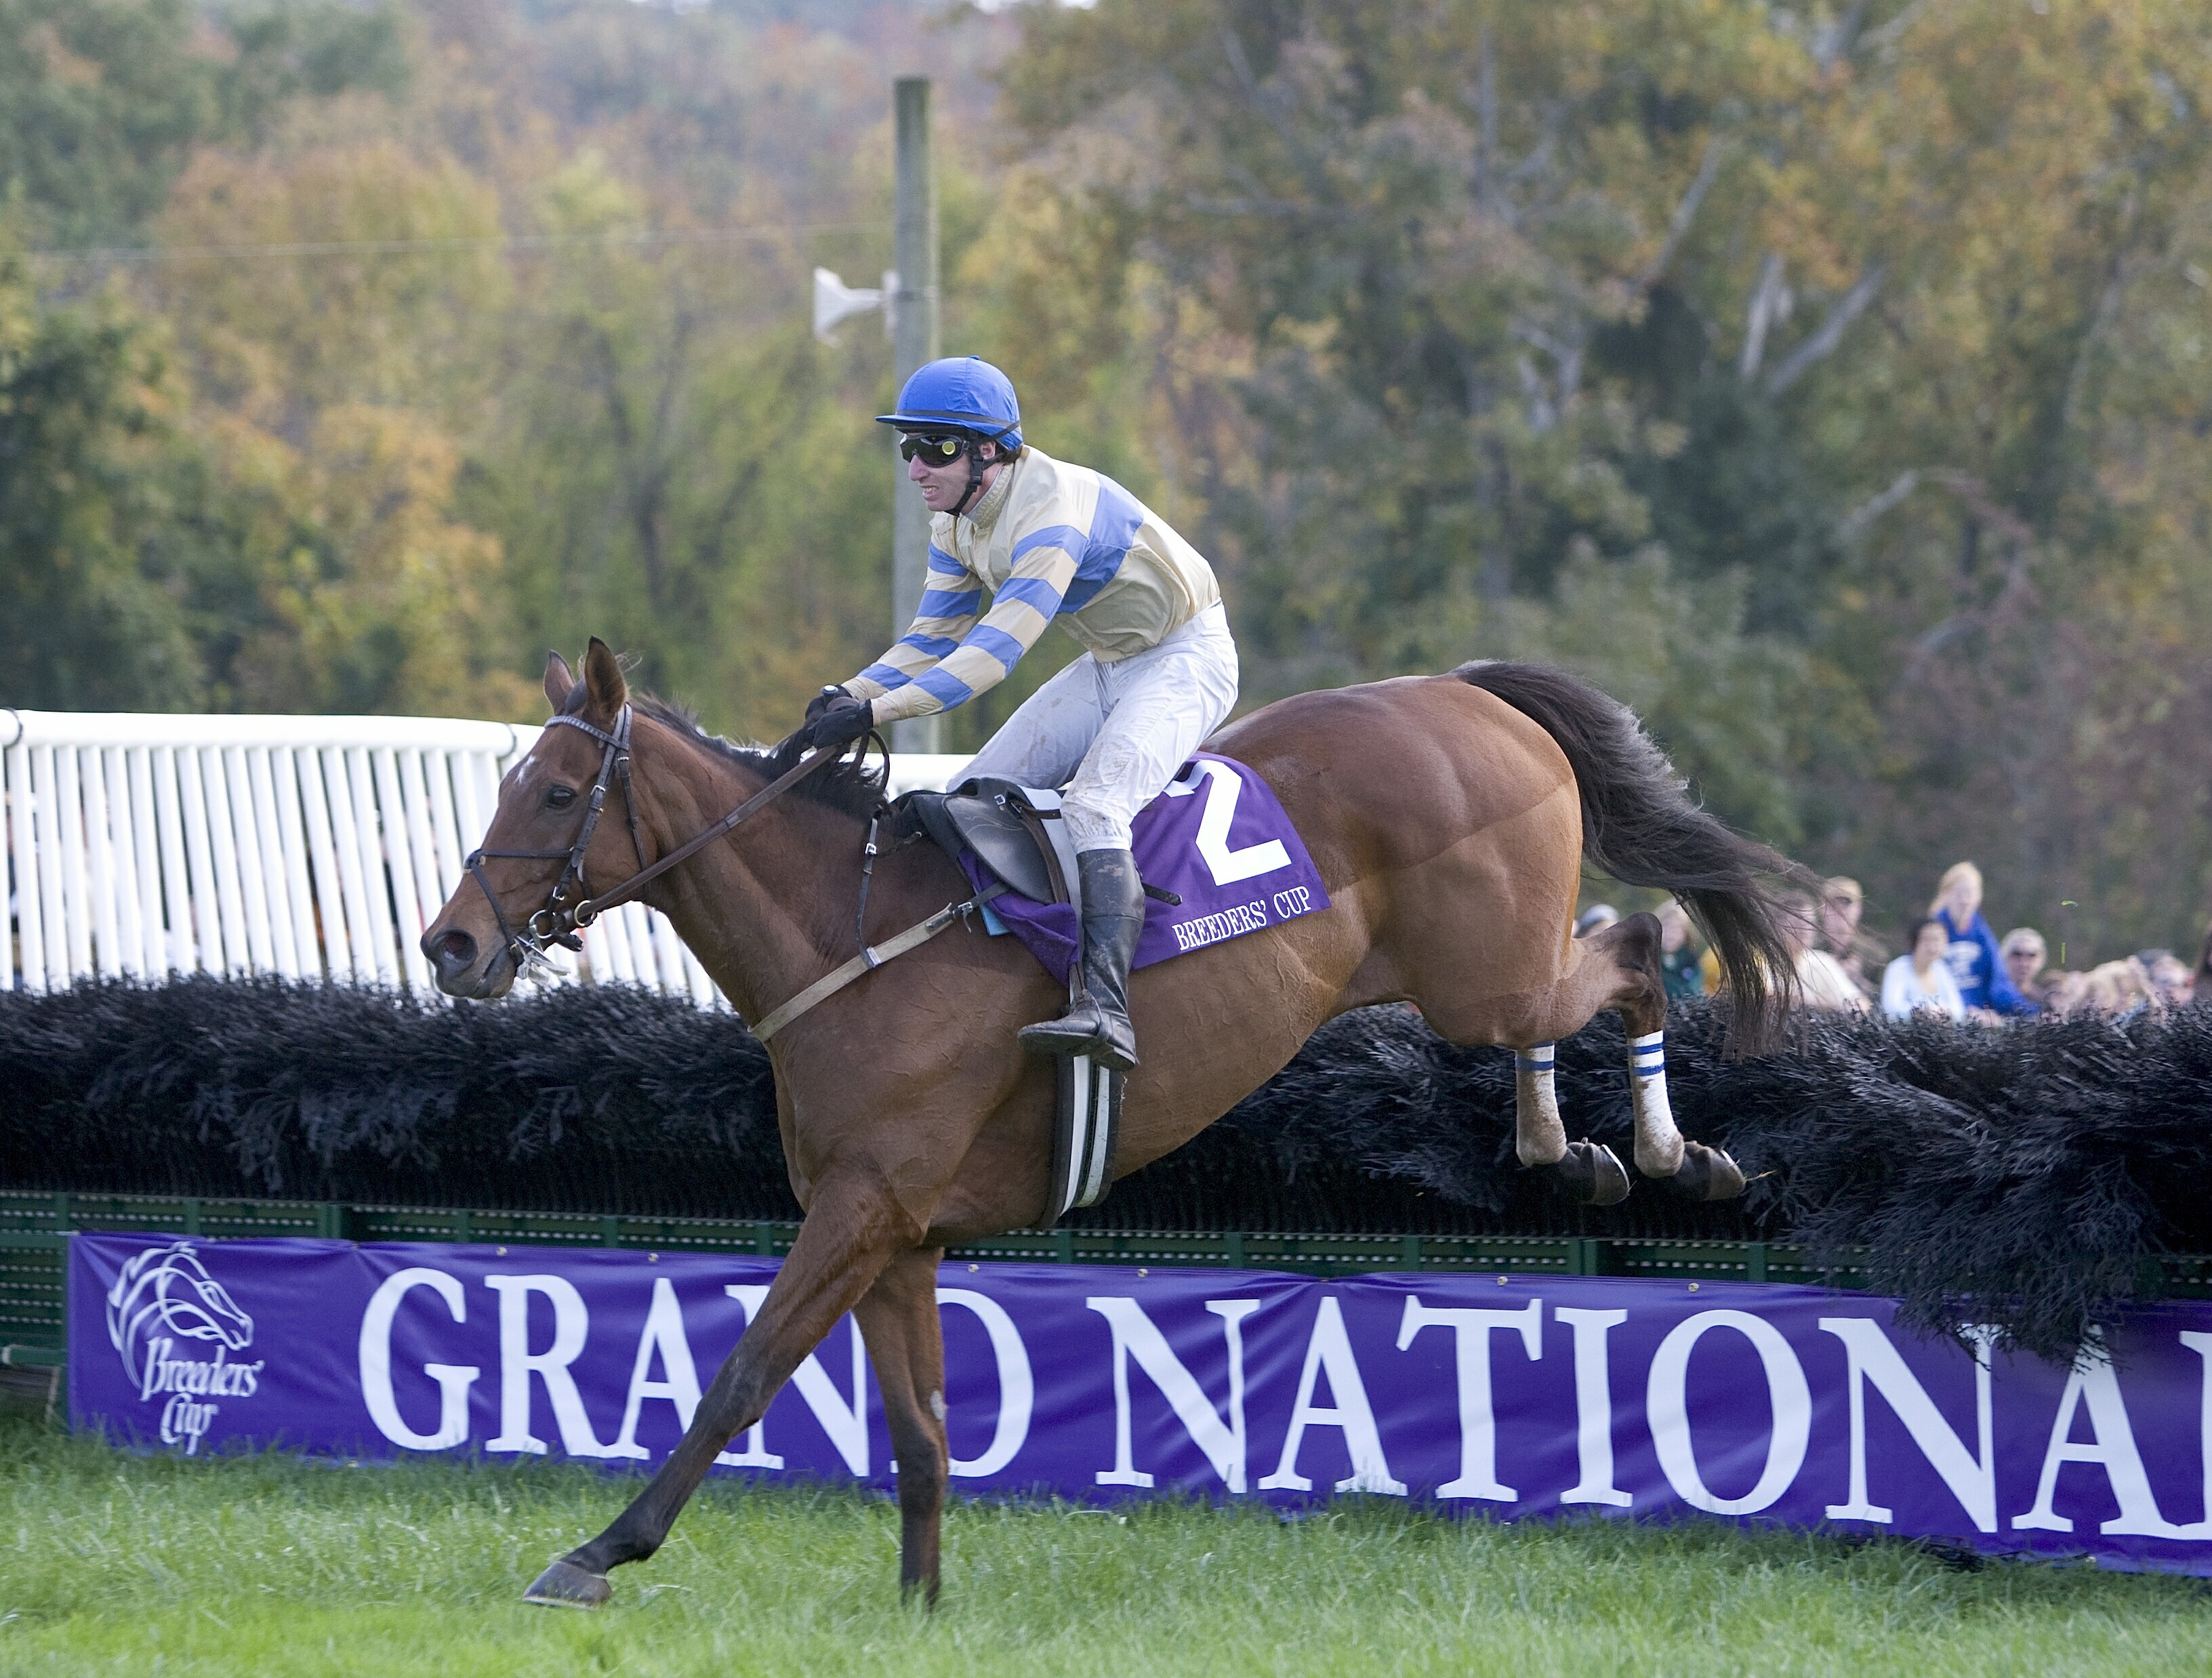 McDynamo (Jody Petty up) clears the last jump on his way to win the 2007 Grand National at Far Hills (Tod Marks)